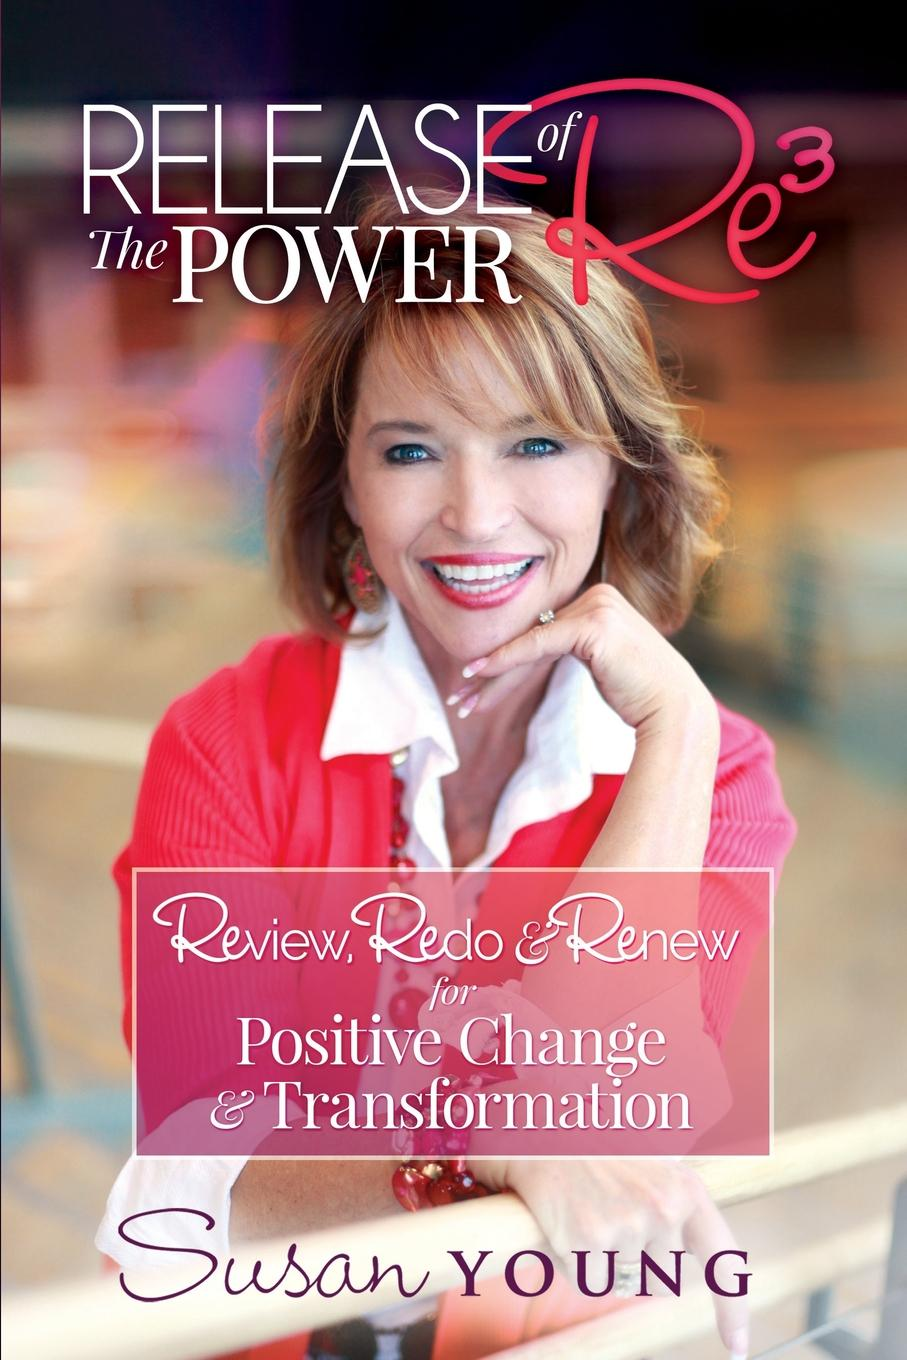 Susan C Young Release the Power of Re3. Review, Redo . Renew for Positive Change . Transformation change your mind change your life